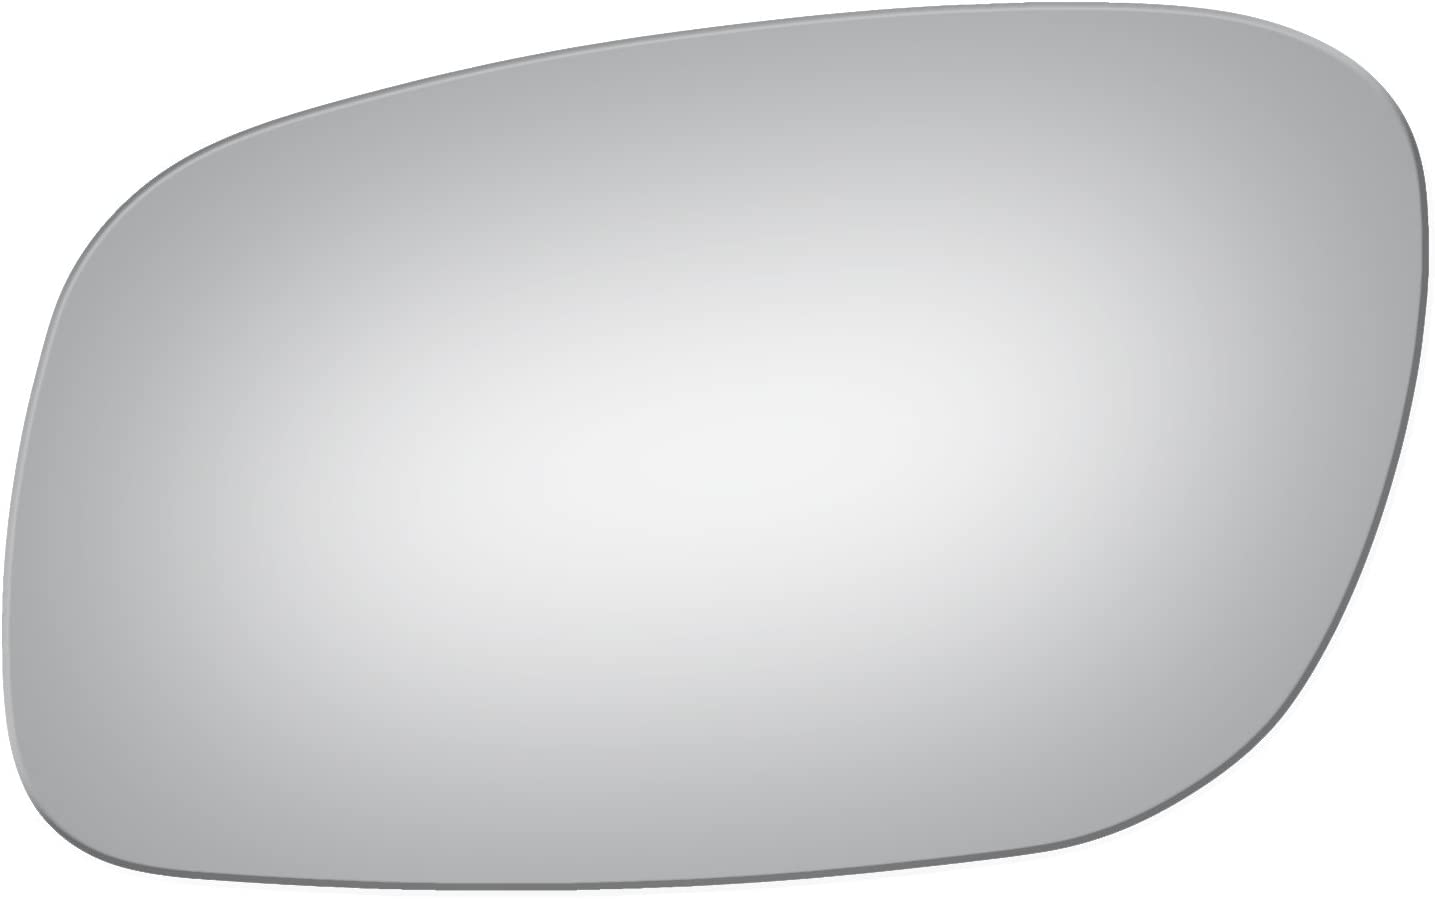 Burco 2837 Driver Side Power Replacement Mirror Glass for 98-11 Lincoln Town Car